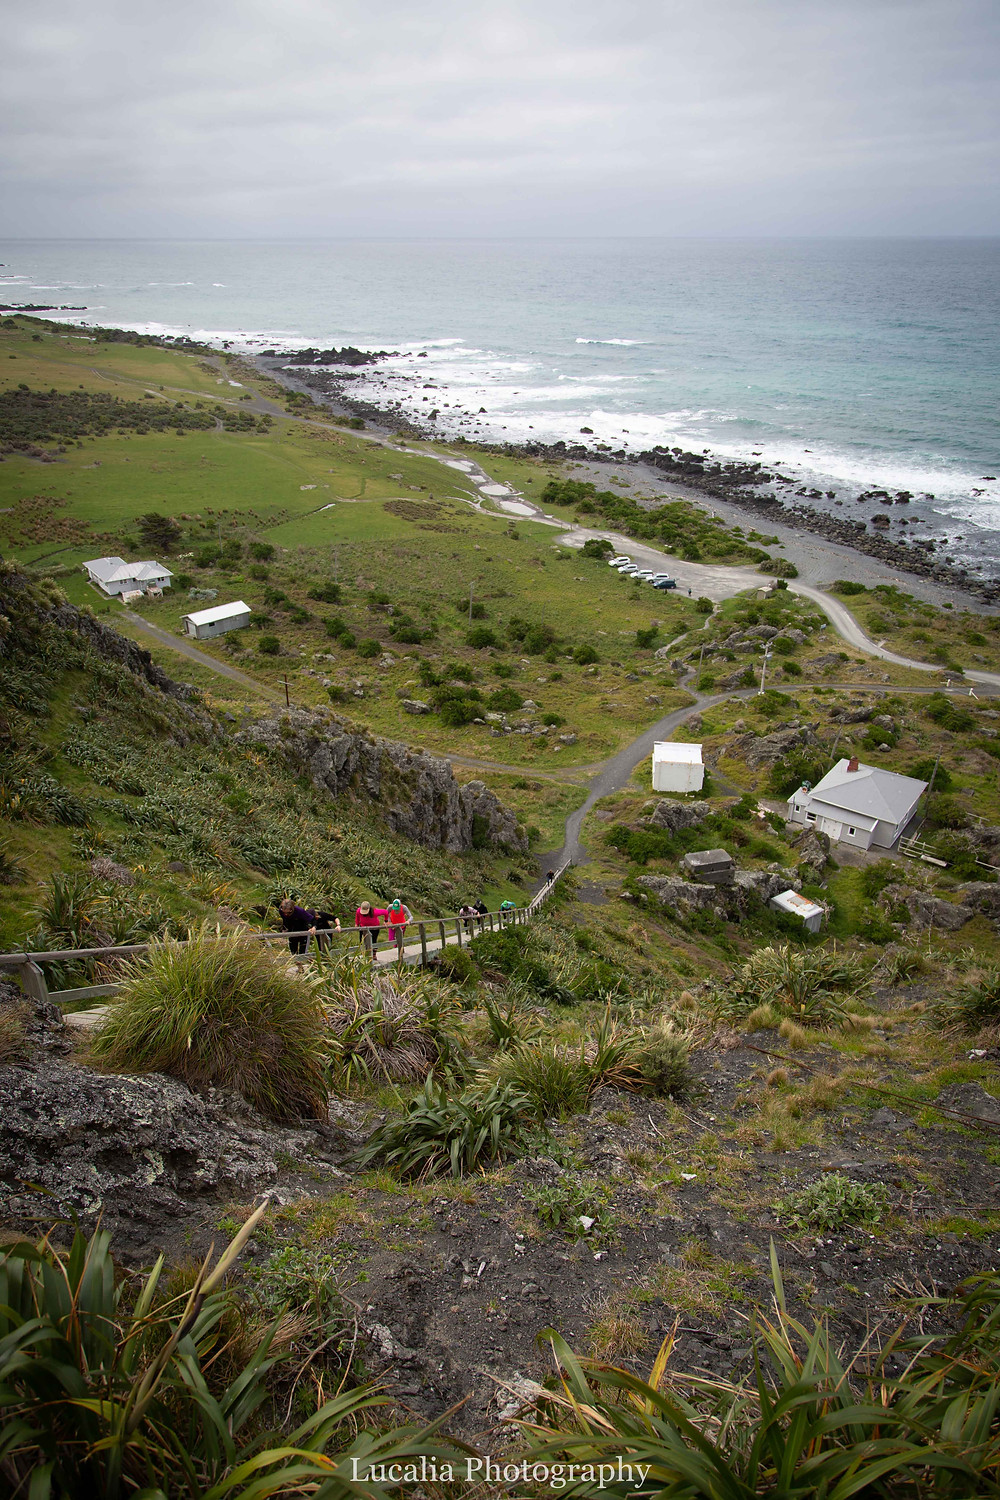 Climbing the 250 steps to Cape Palliser, Wairarapa, New Zealand